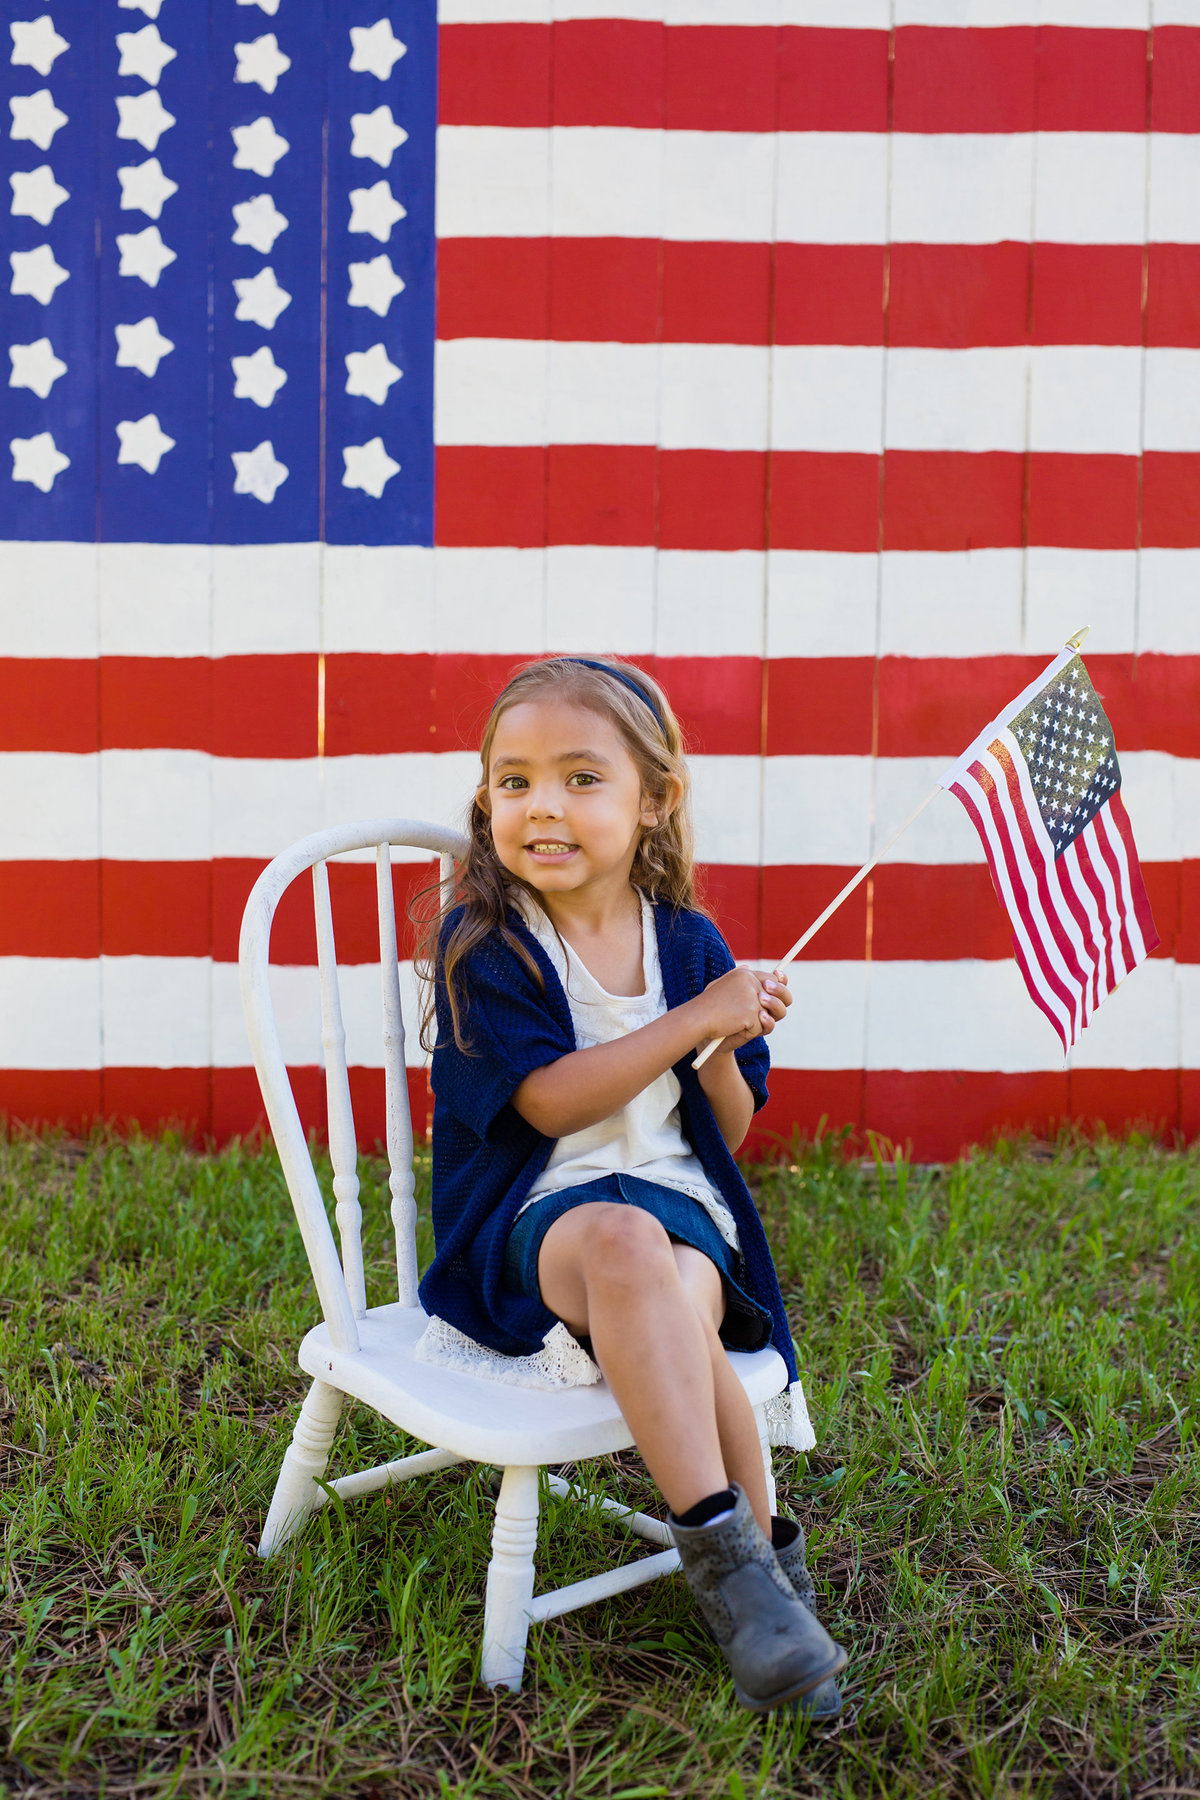 Photo shoot girl 4th of July